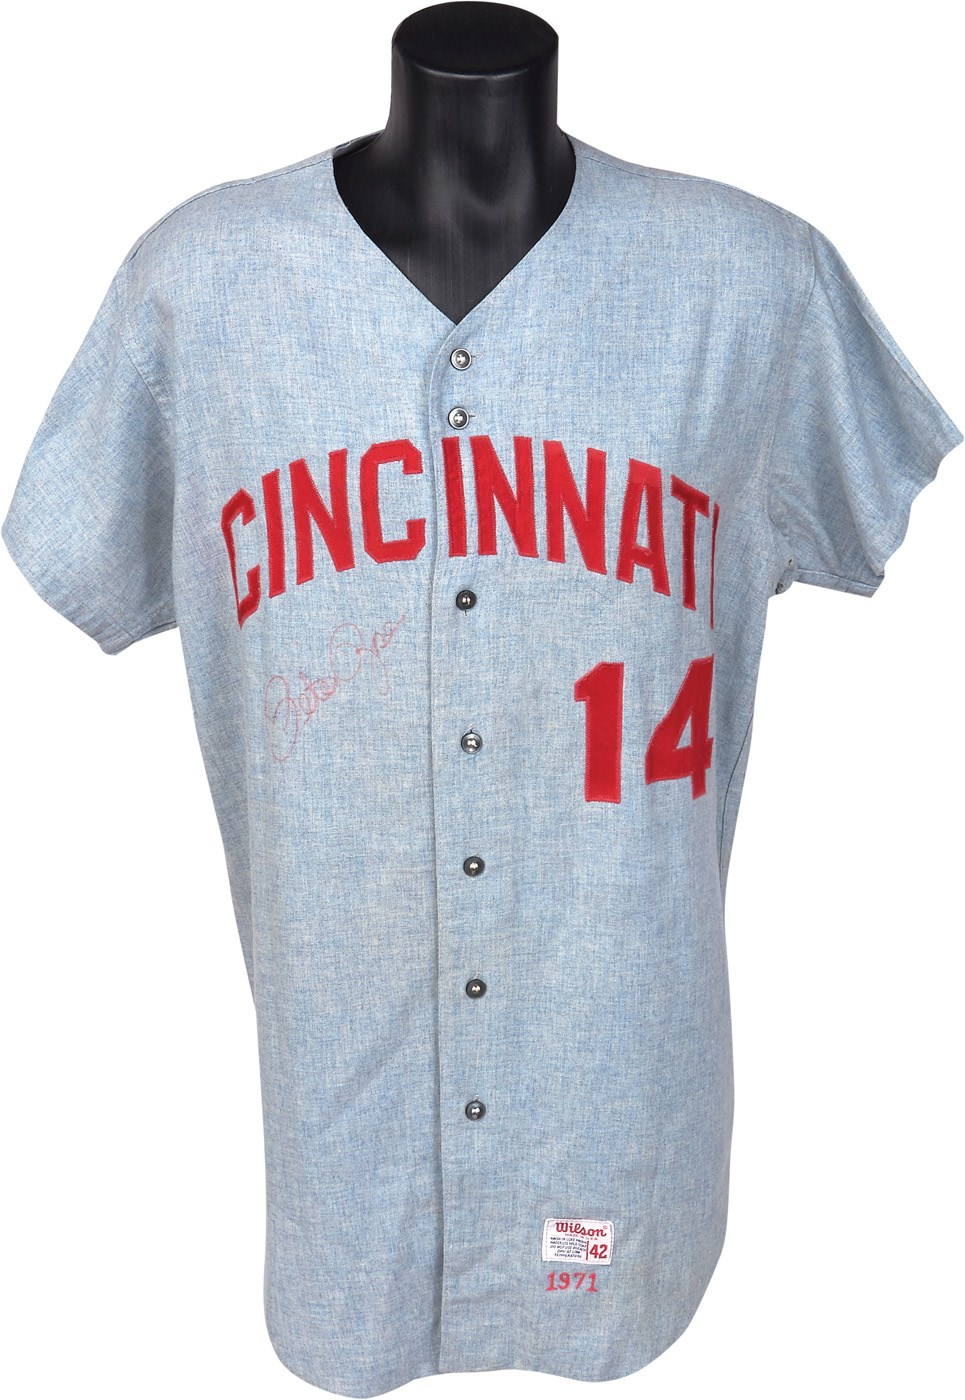 Pete Rose & Cincinnati Reds - Invit17